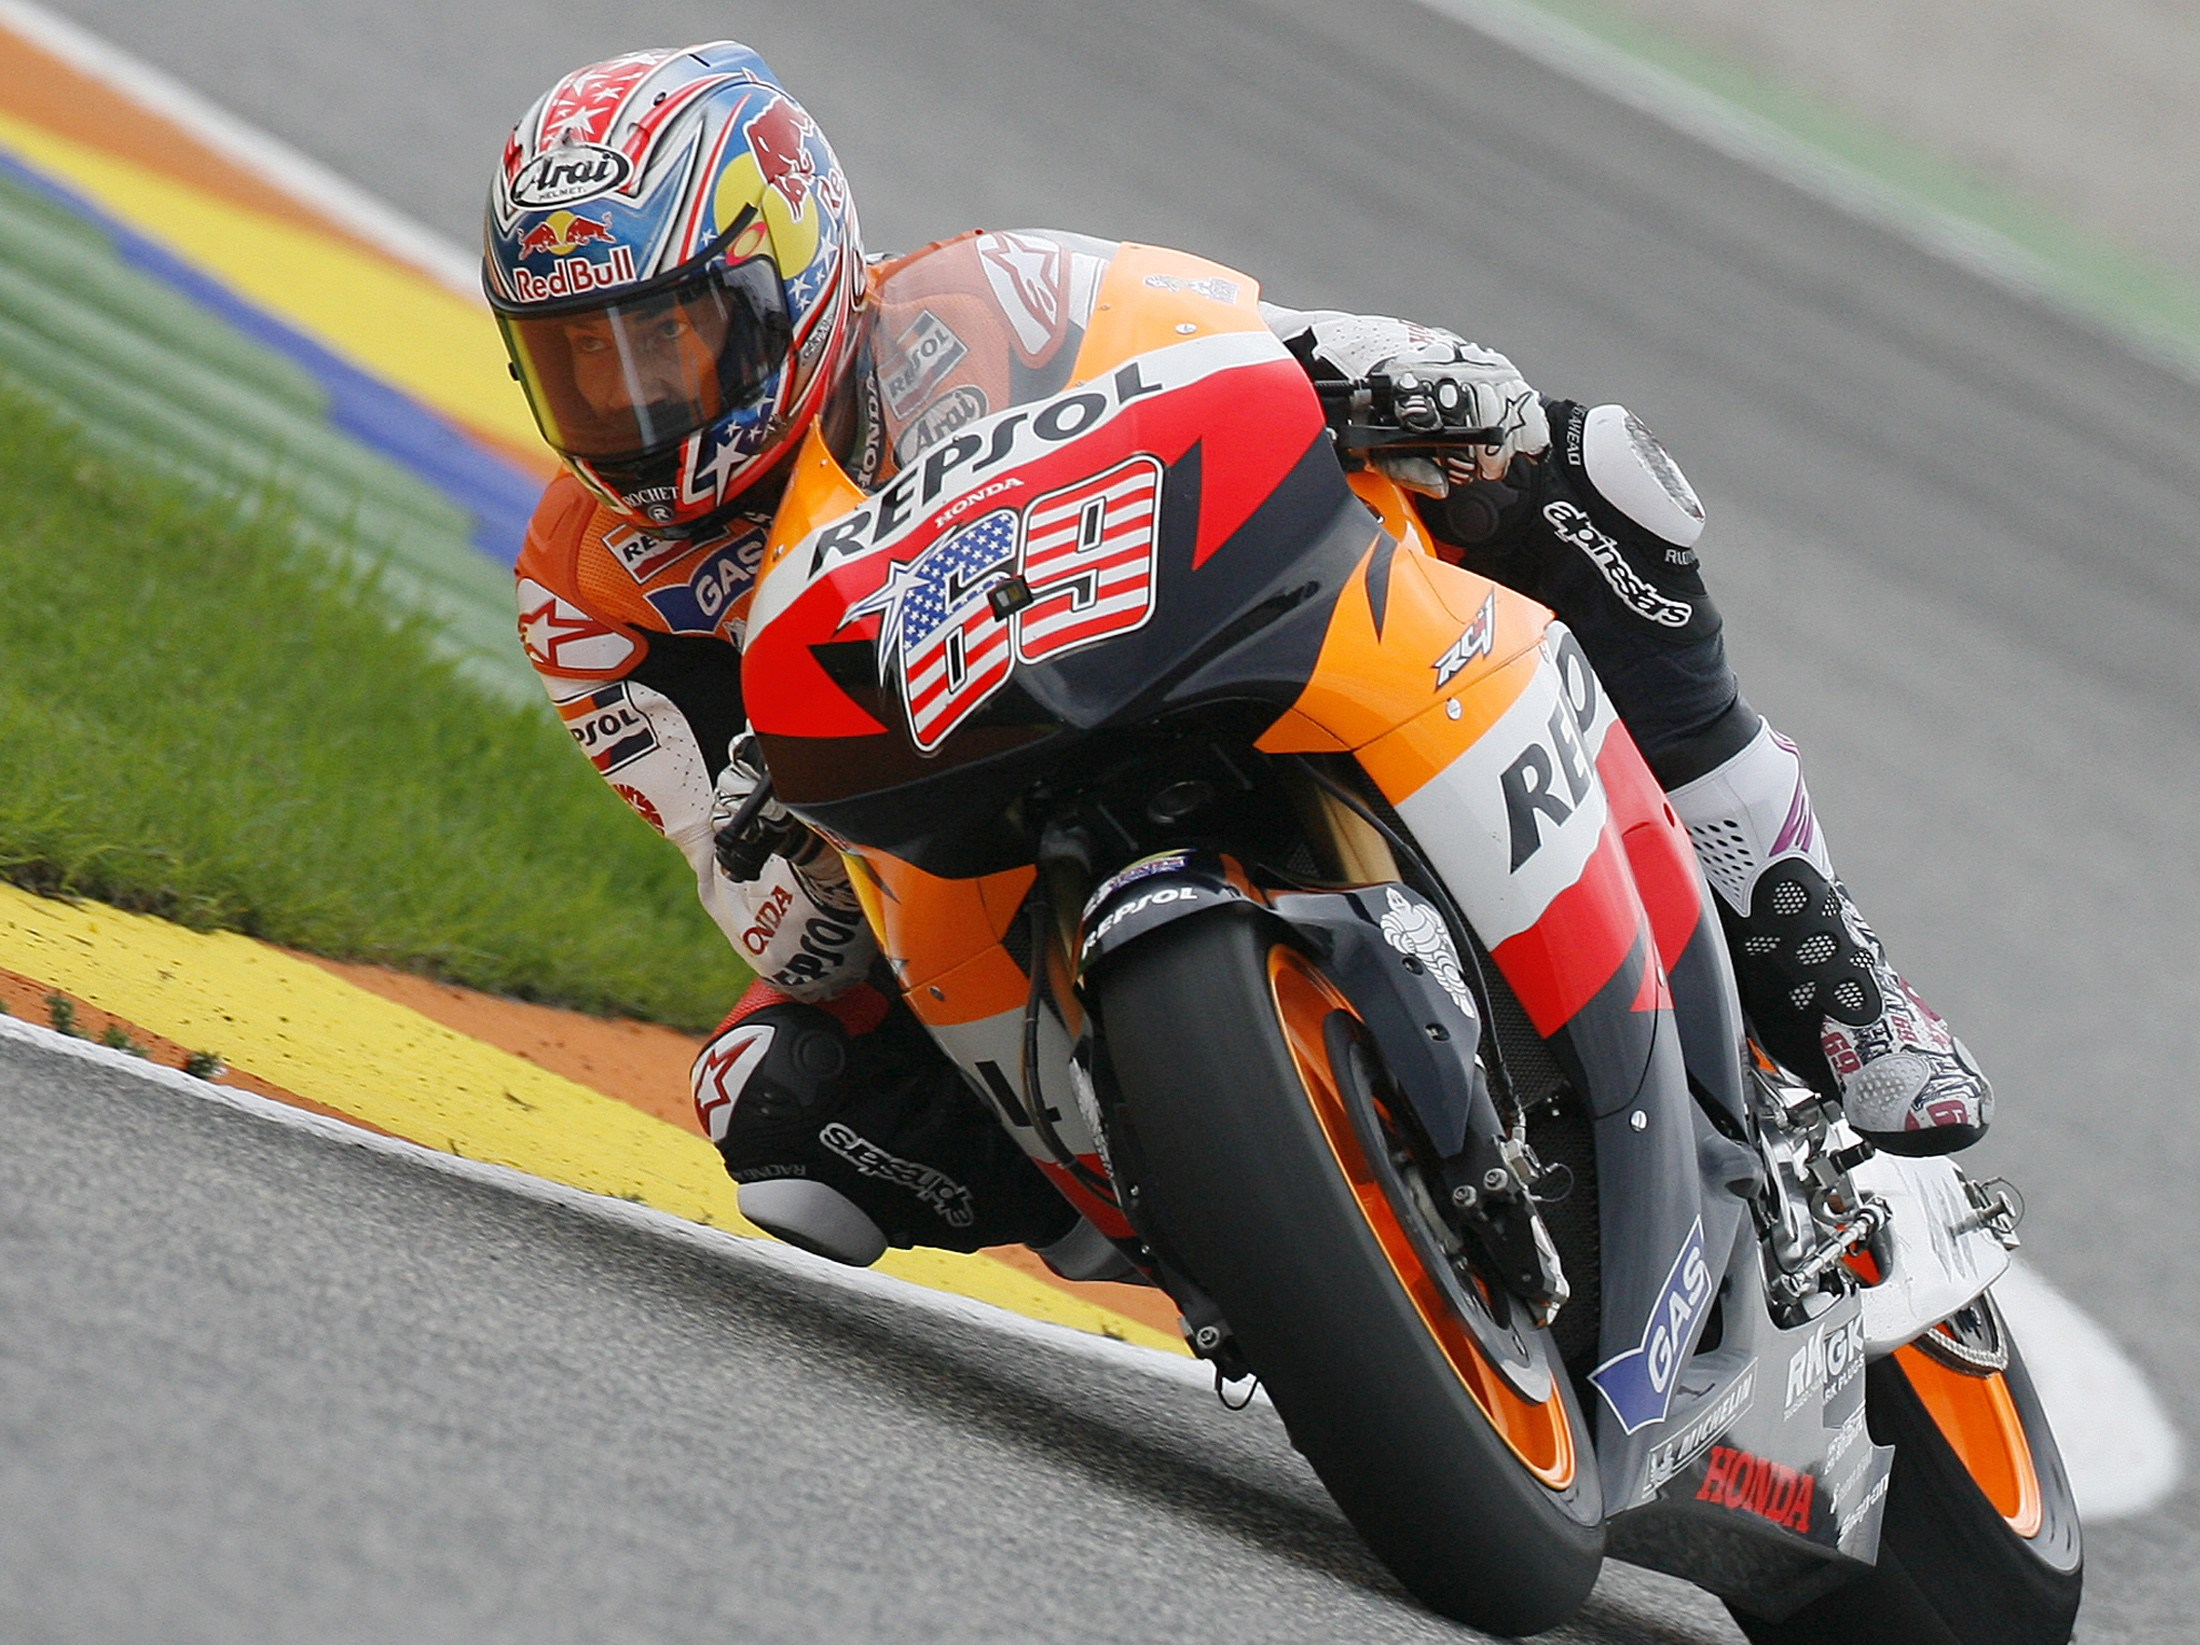 Honda MotoGP rider Nicky Hayden of the U.S. powers through a curve during a free practice session a day before the Valencia Grand Prix at the Ricardo ...